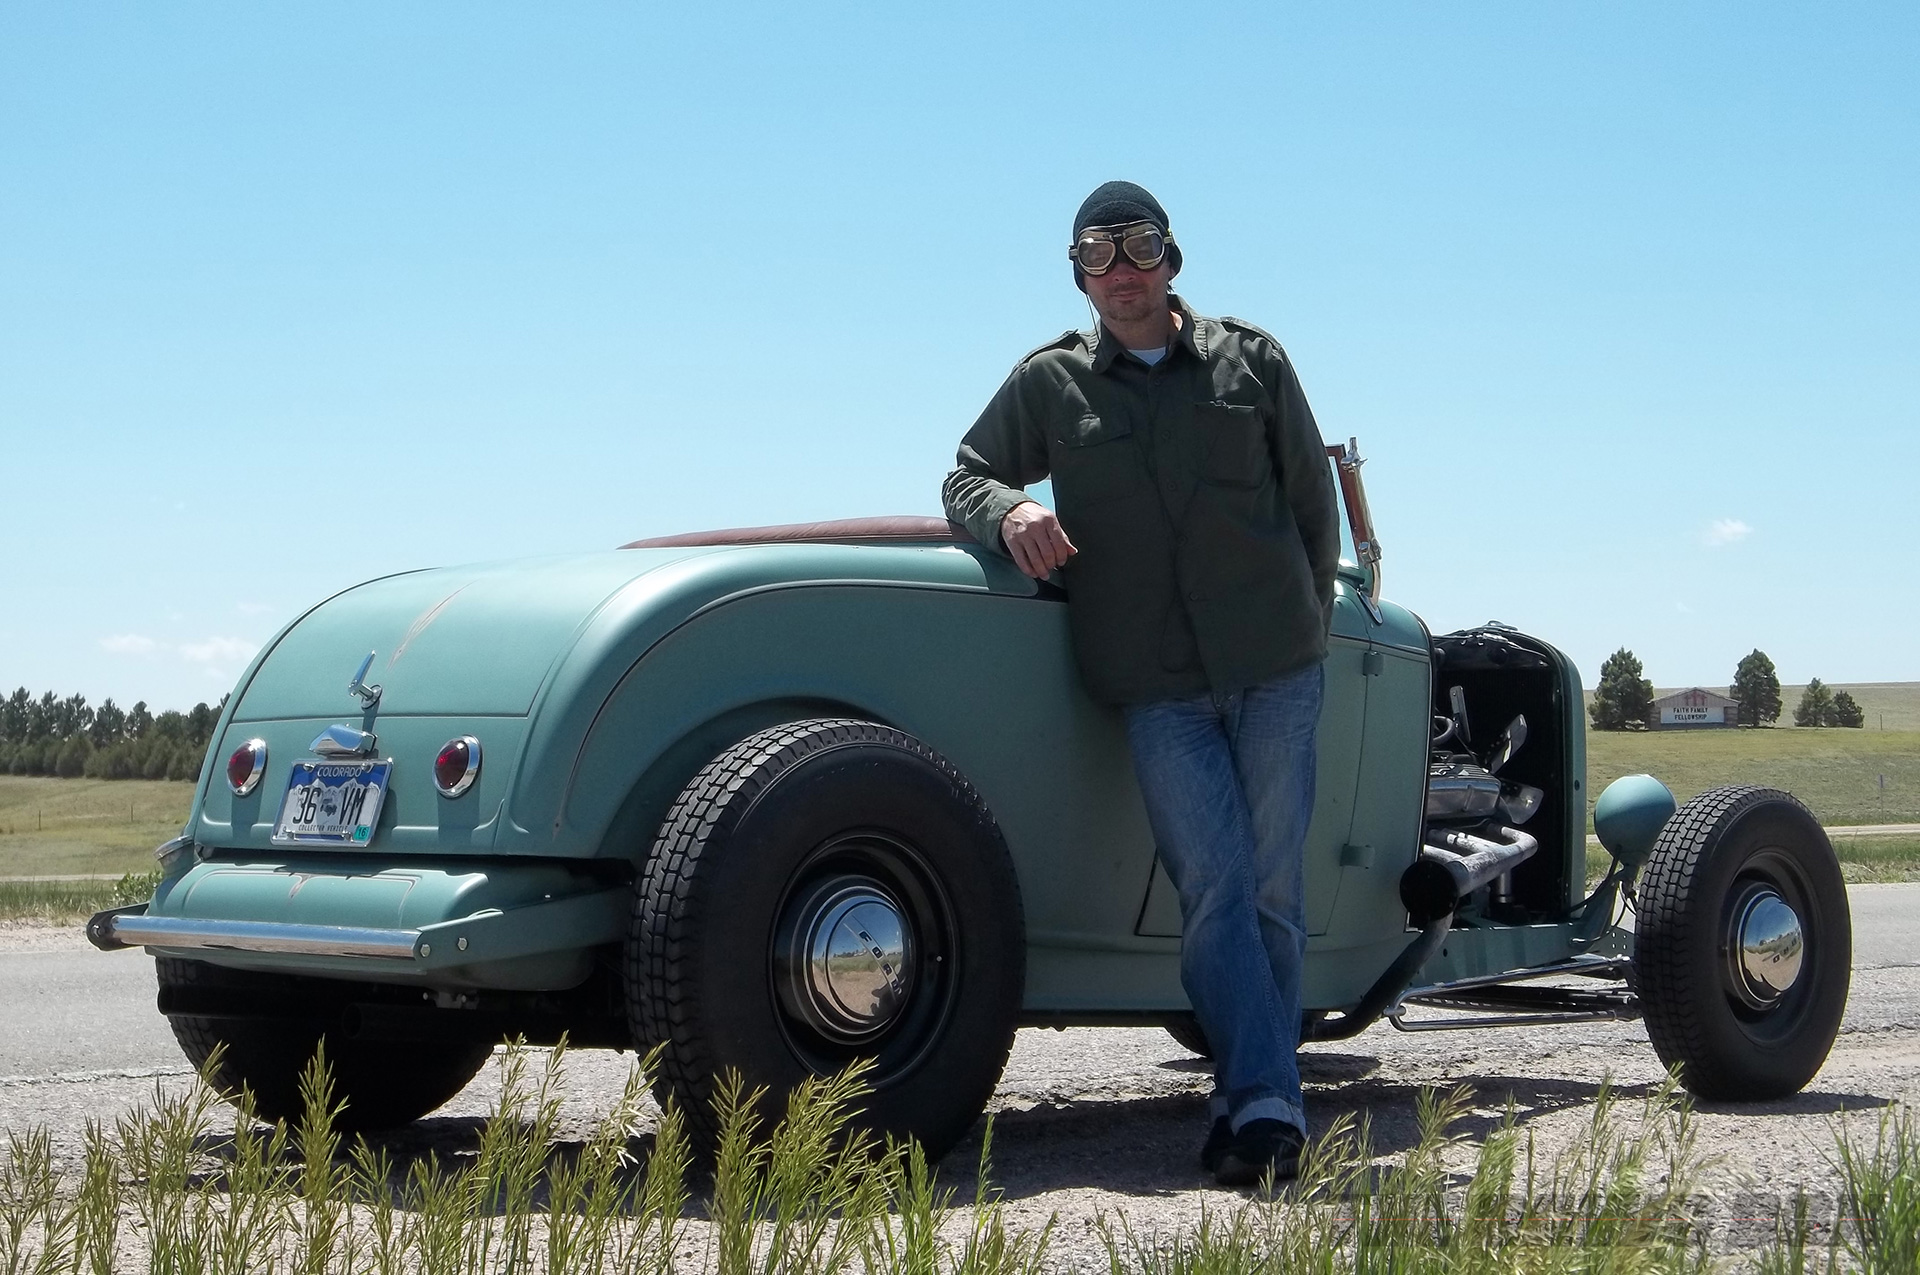 Tony Thacker posing next to Henry Astor's '32 Ford Roadster